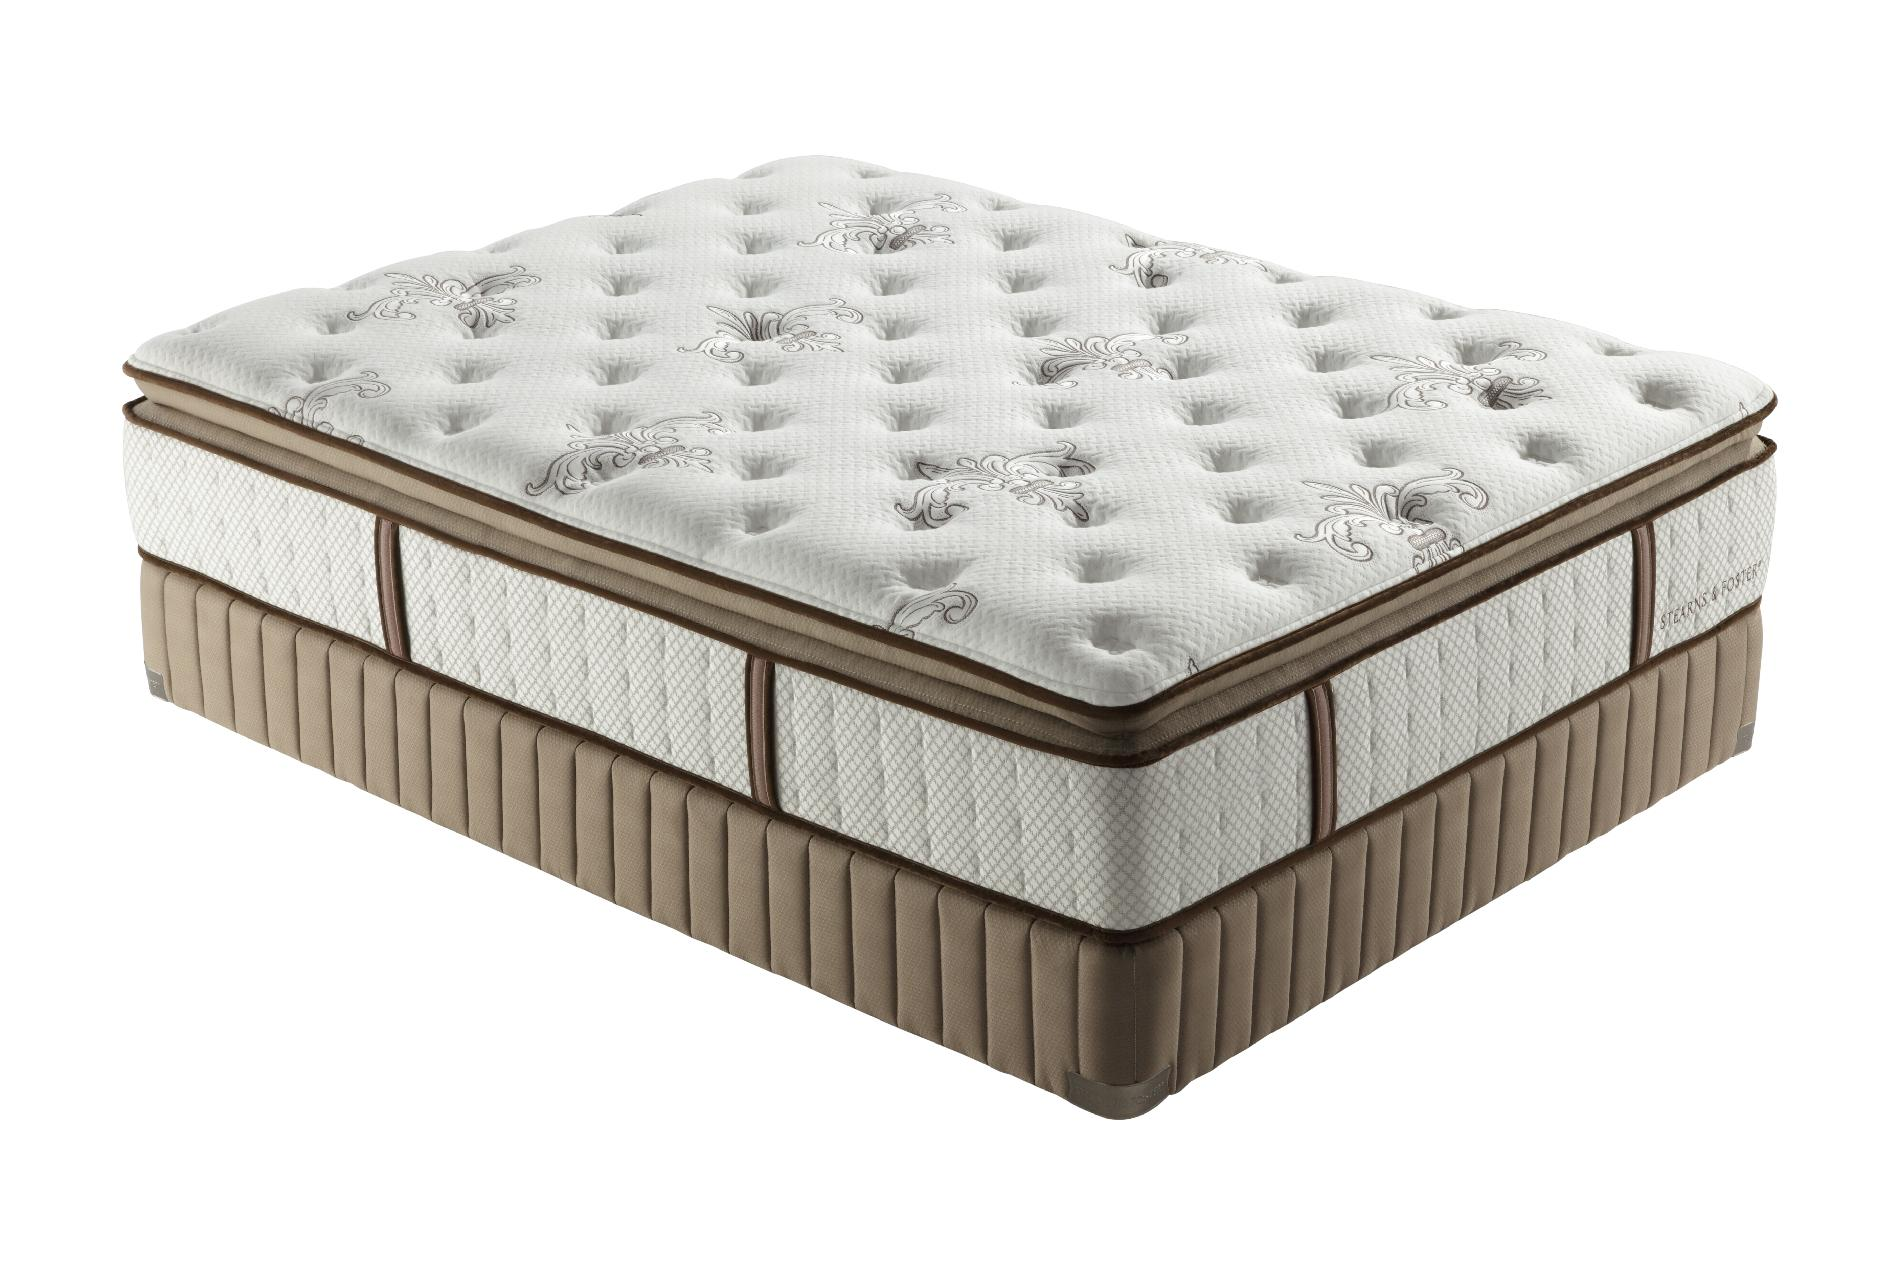 Stearns & Foster Estate Angie II Plush Euro Pillowtop Queen Mattress Only